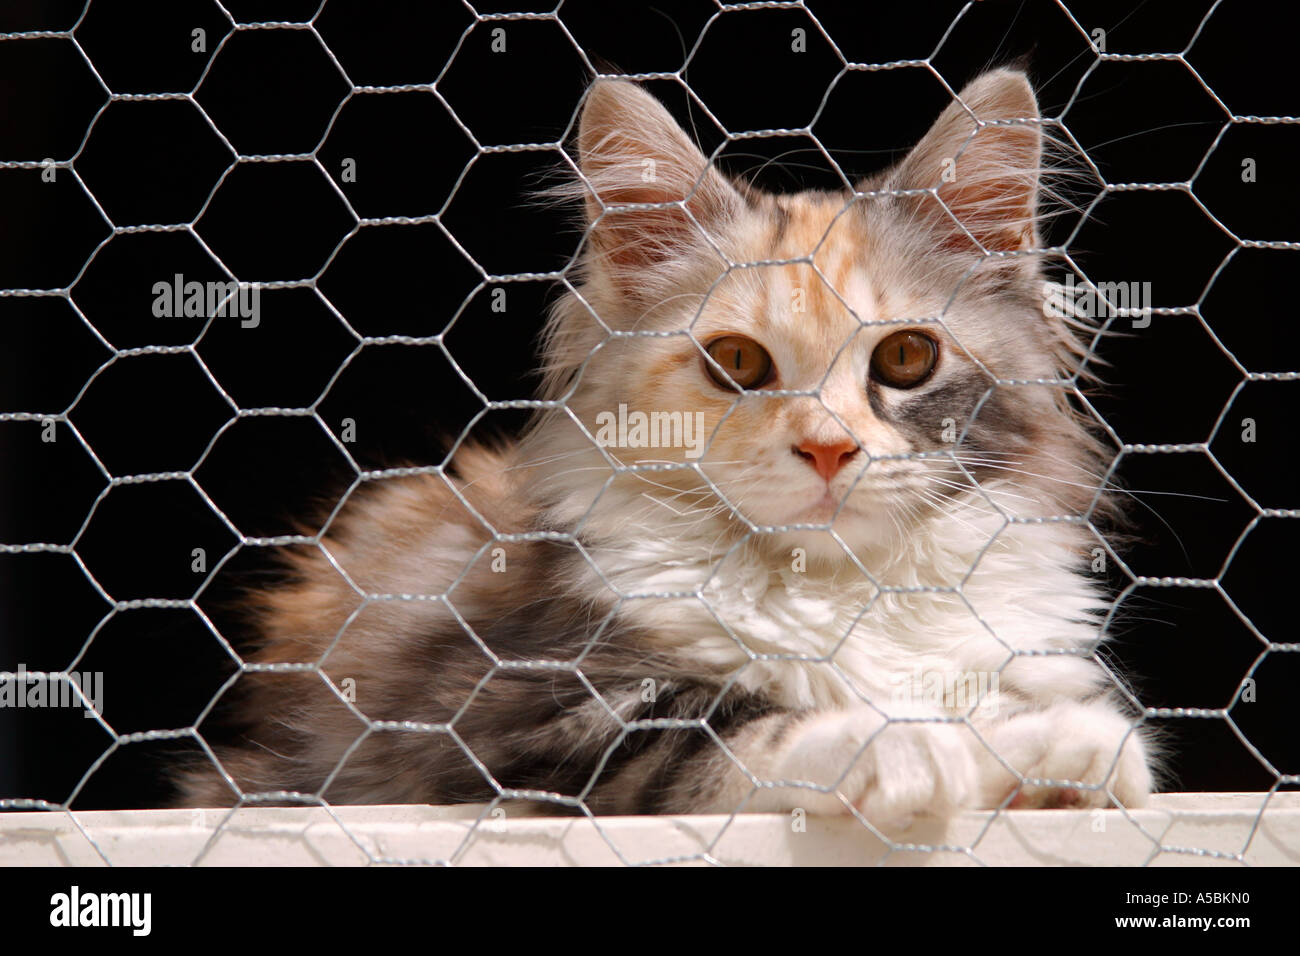 Domestic cat - Stock Image